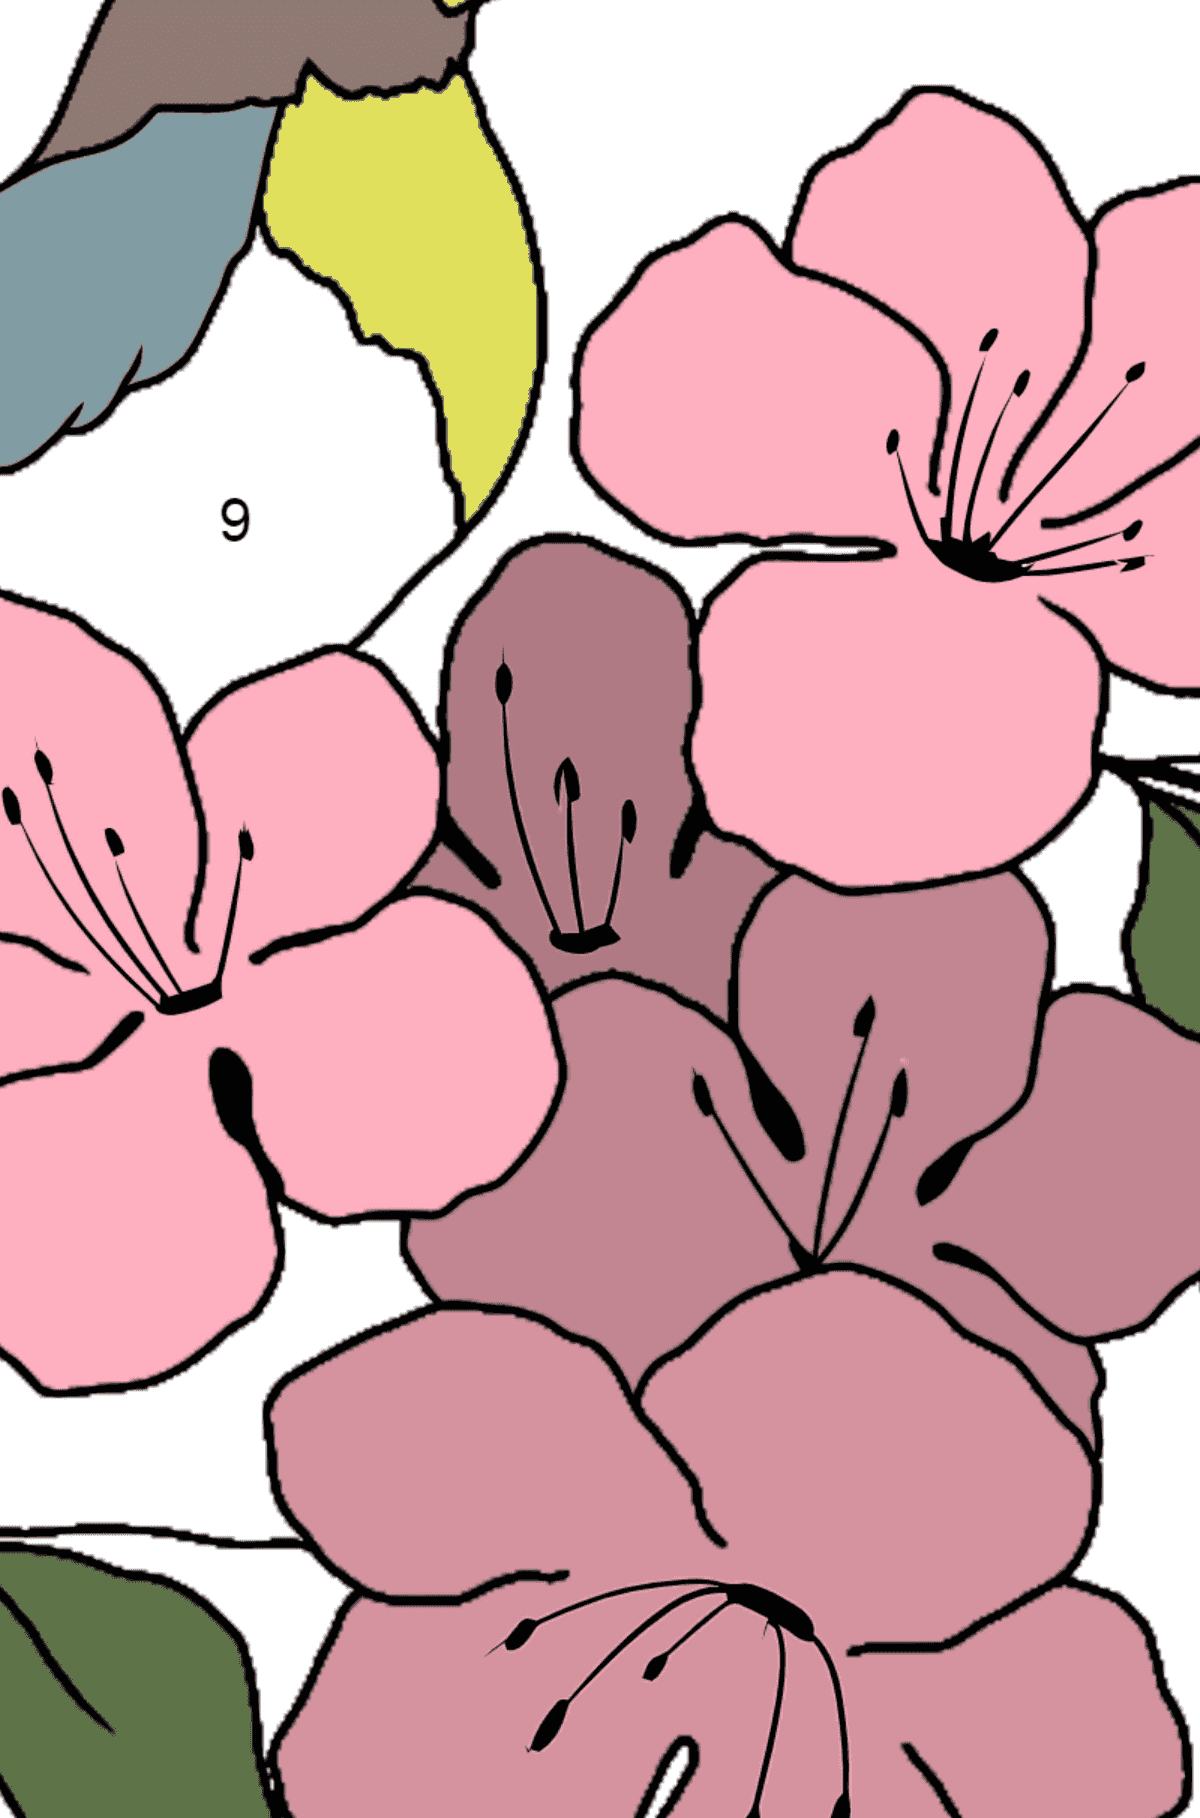 Summer Coloring Page - A Bird on a Branch with Flowers for Kids  - Color by Number